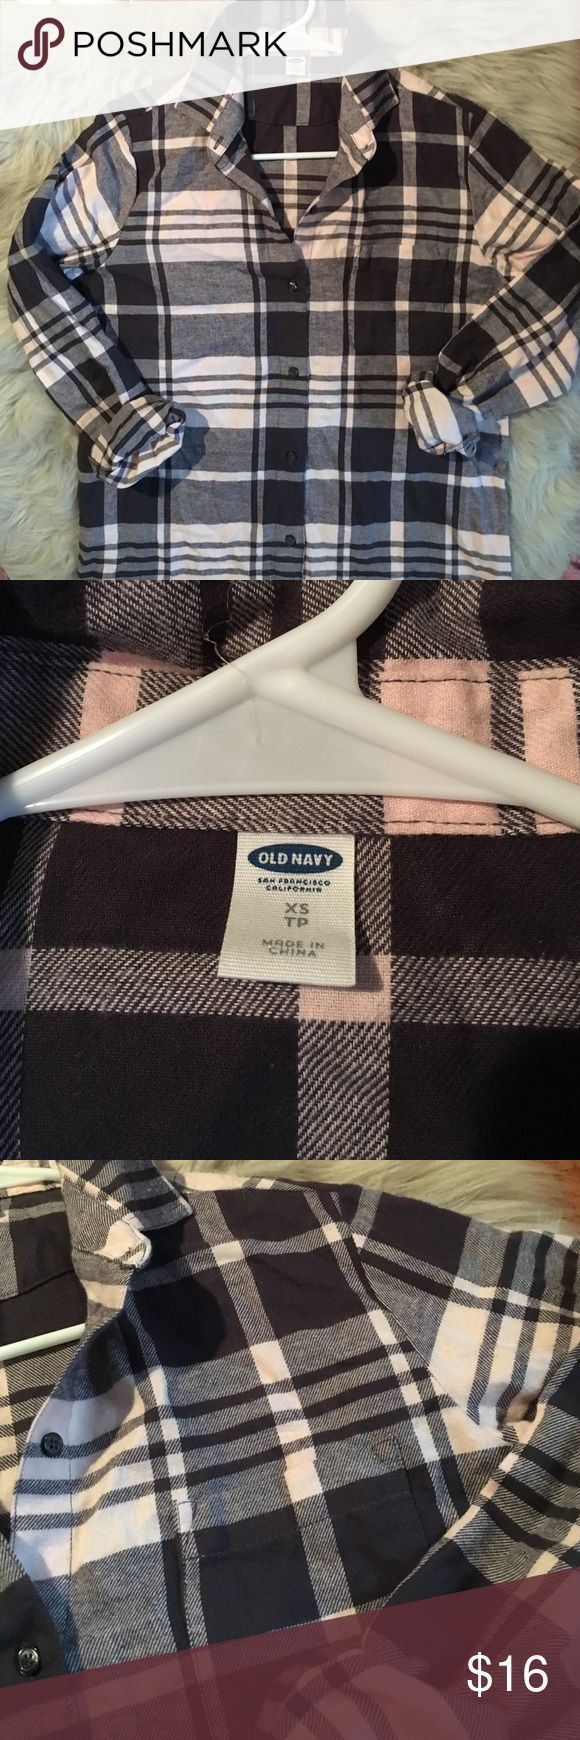 Old Navy Flannel Tunic Super soft and warm! I like it with rolled sleeves and a popped collar. Can also add a belt for more shape. Perfect fall outfit when paired with leggings and boots! No damage - good as new! Old Navy Tops Button Down Shirts